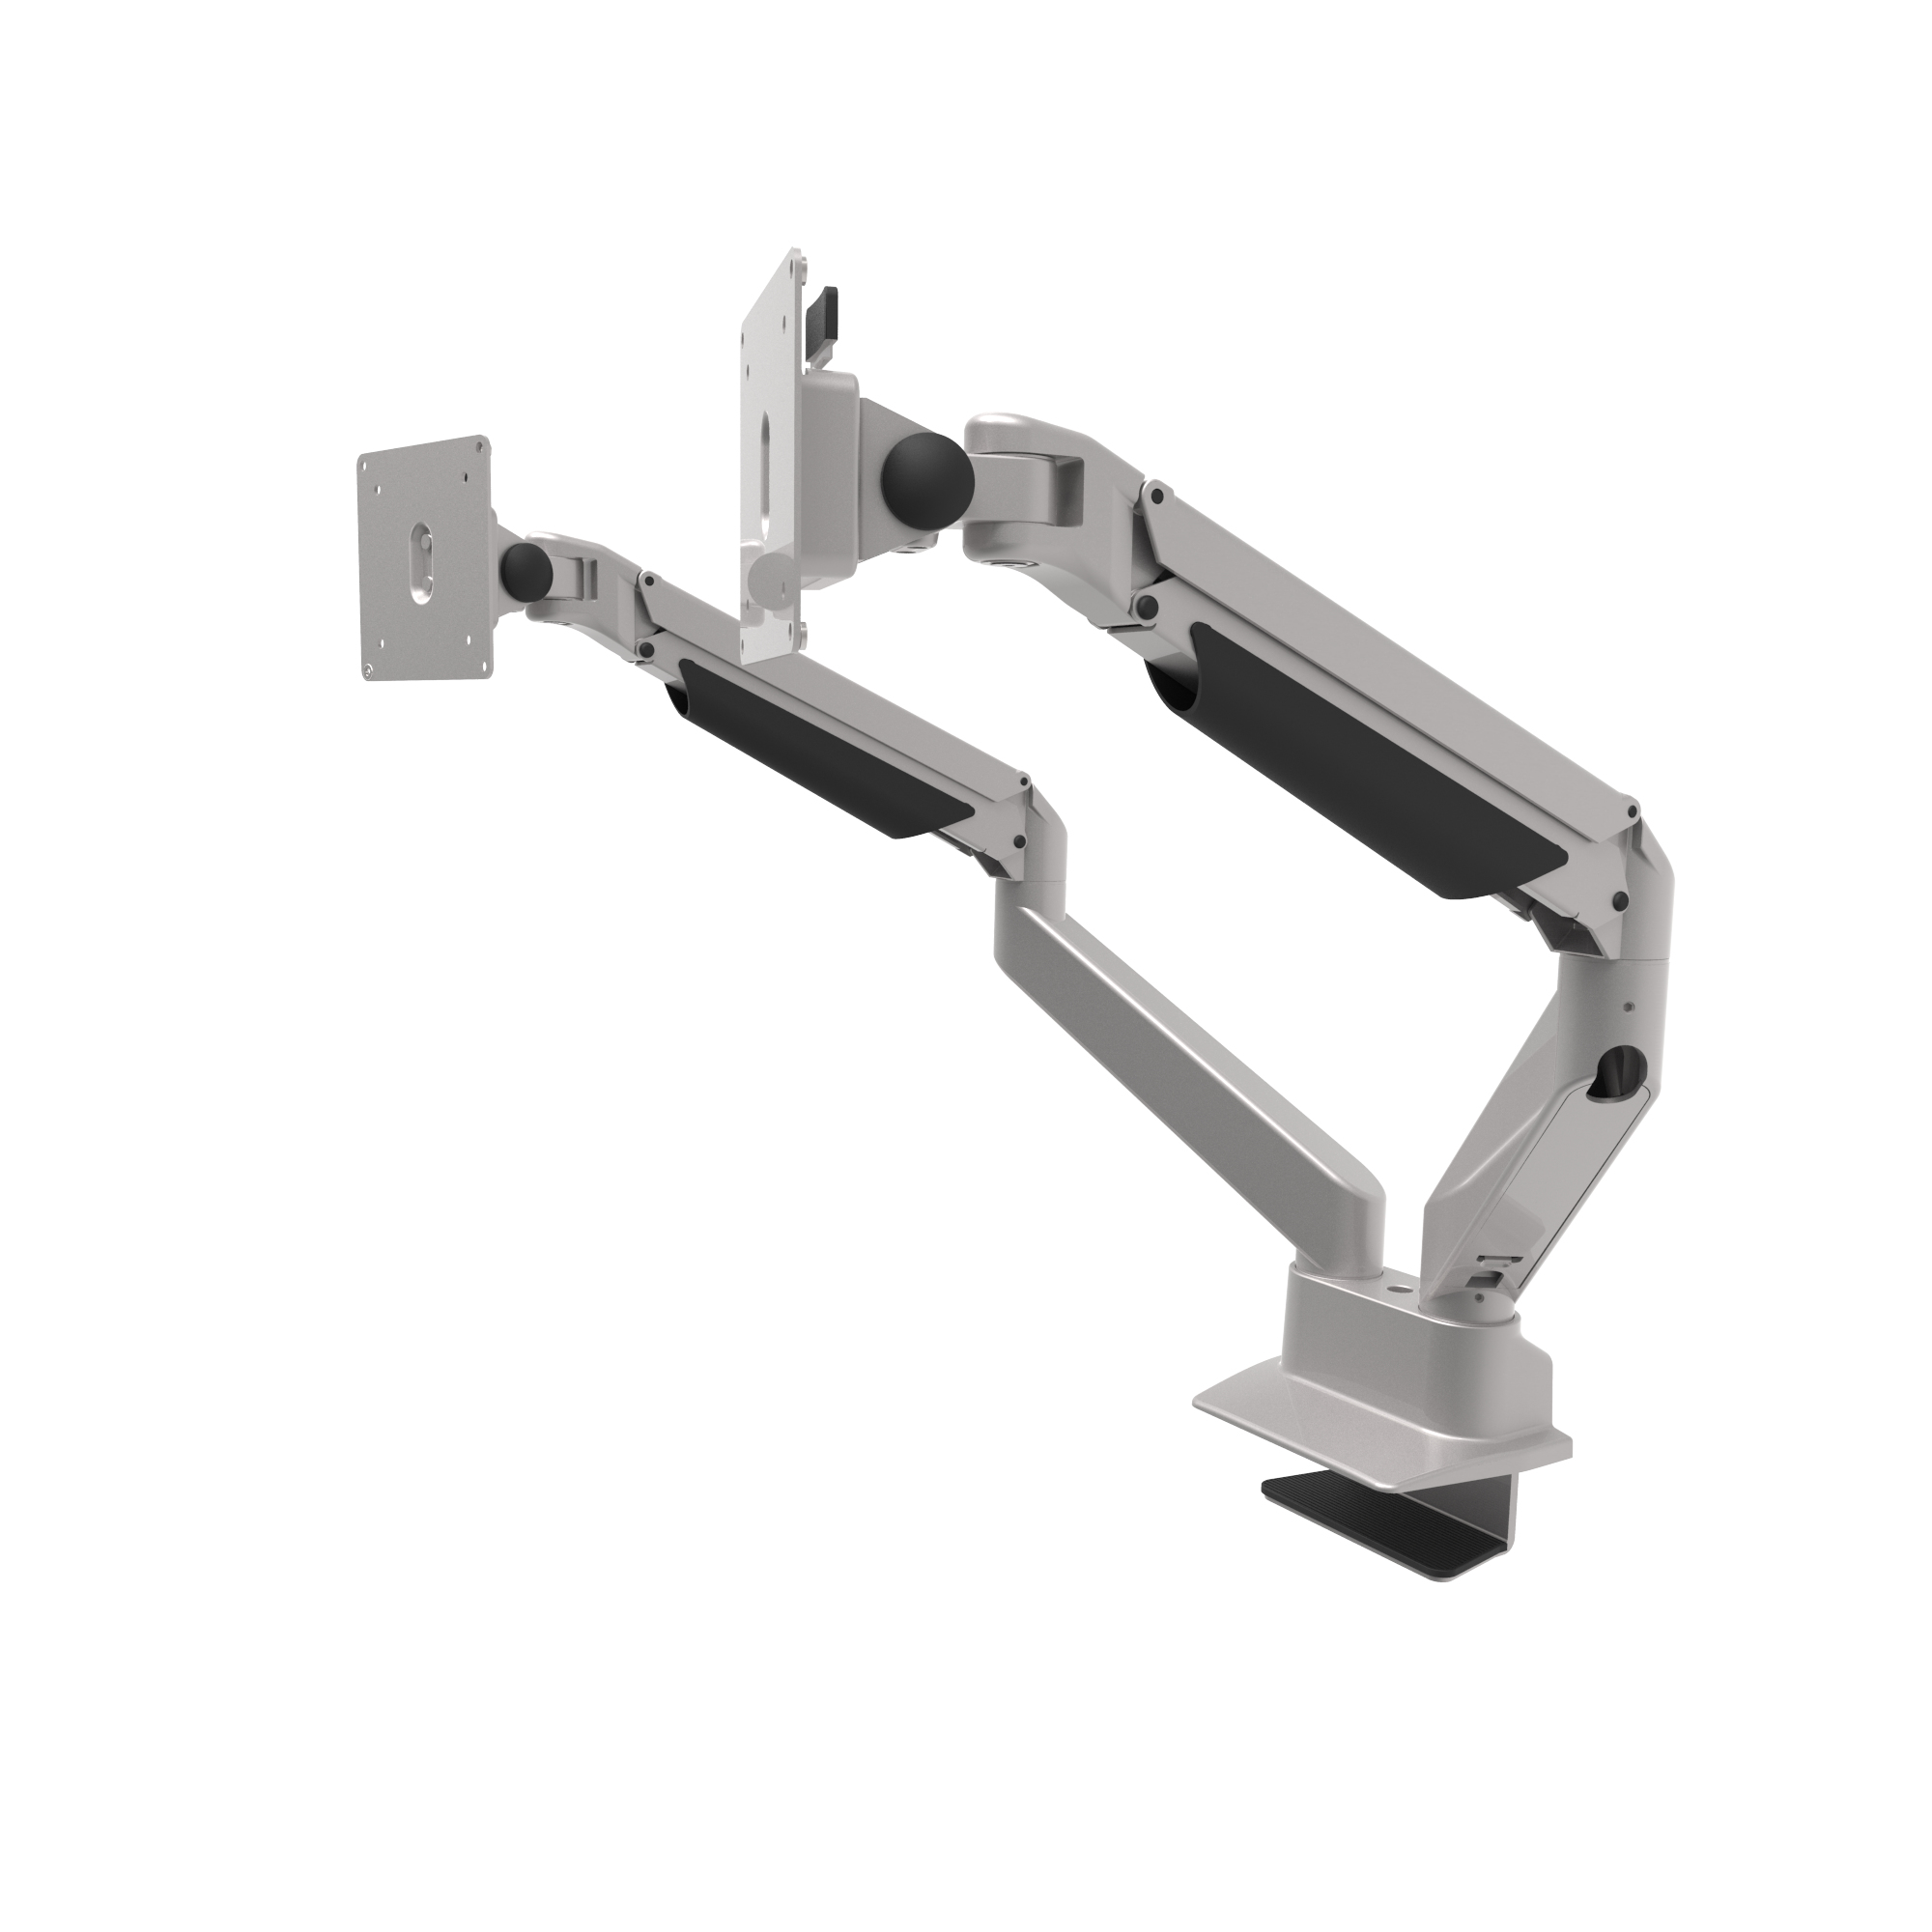 DOUBLE ARTICULATING ARM TWO JOINTS VESA